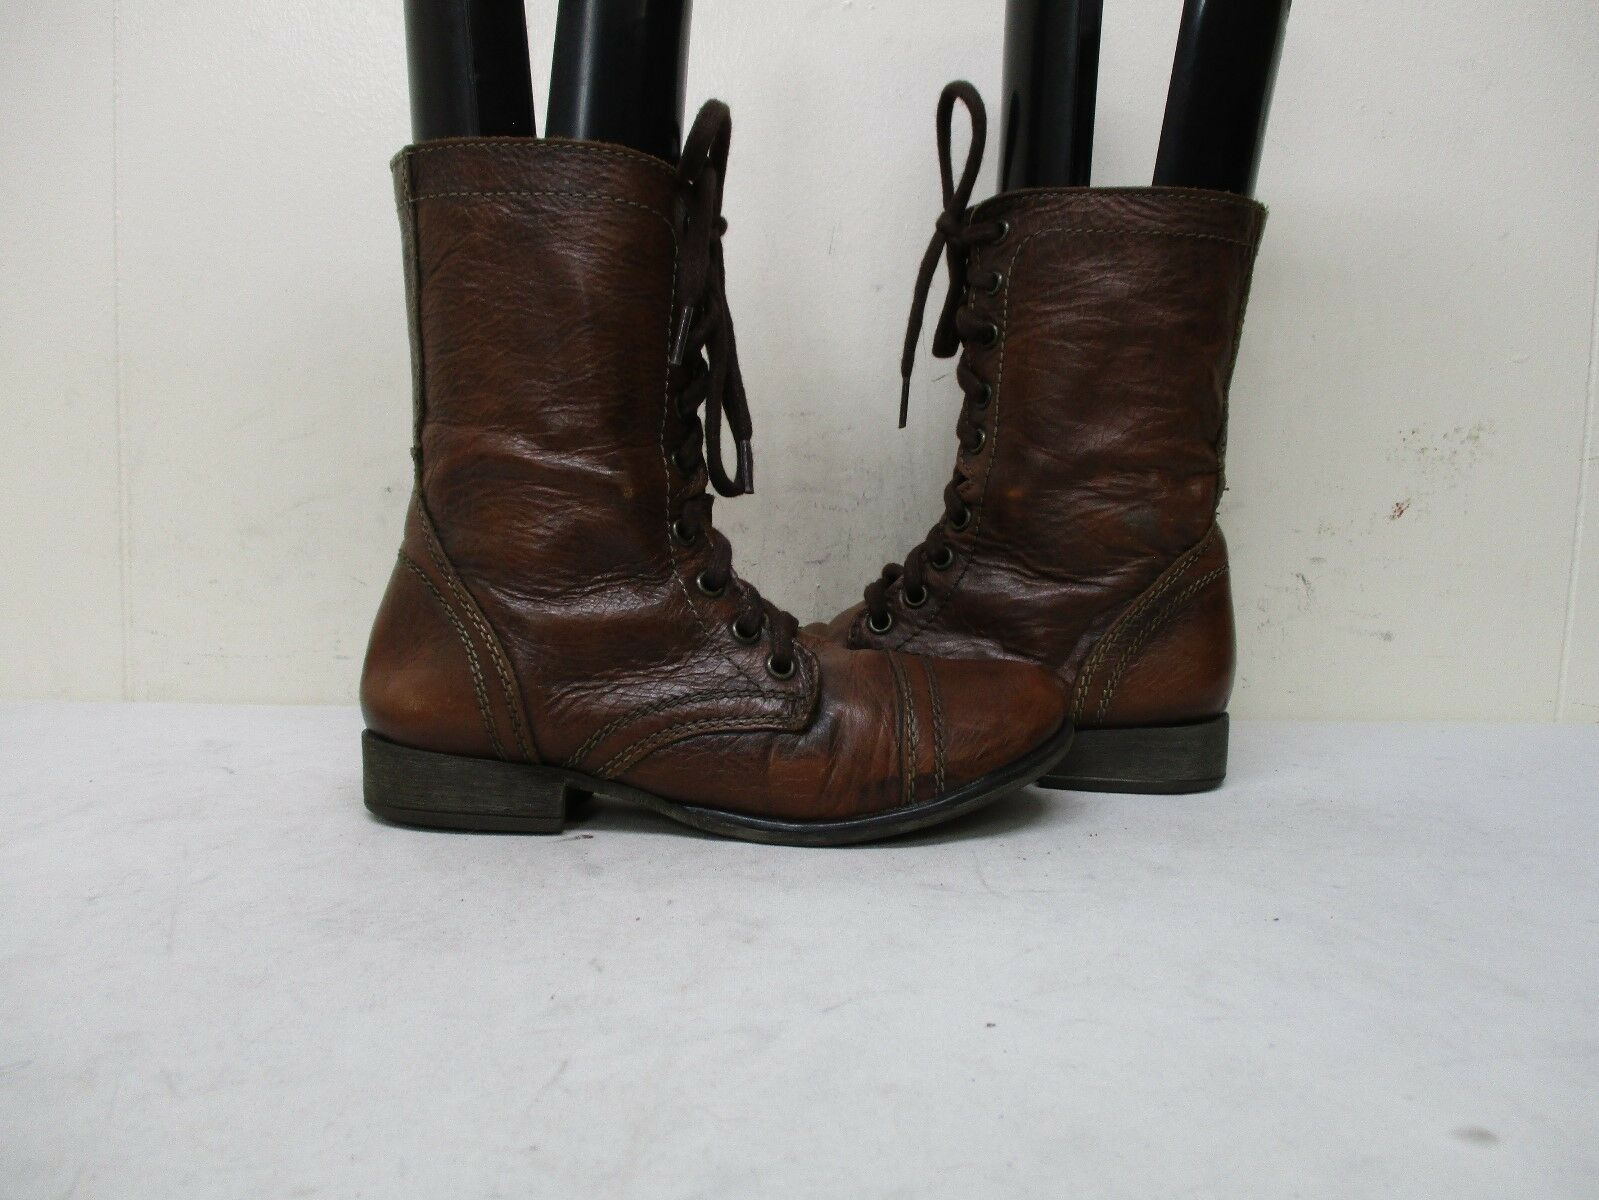 Steve Madden Troopa Mahogany Leather Zip Lace Military Fashion Boots Size 5 M